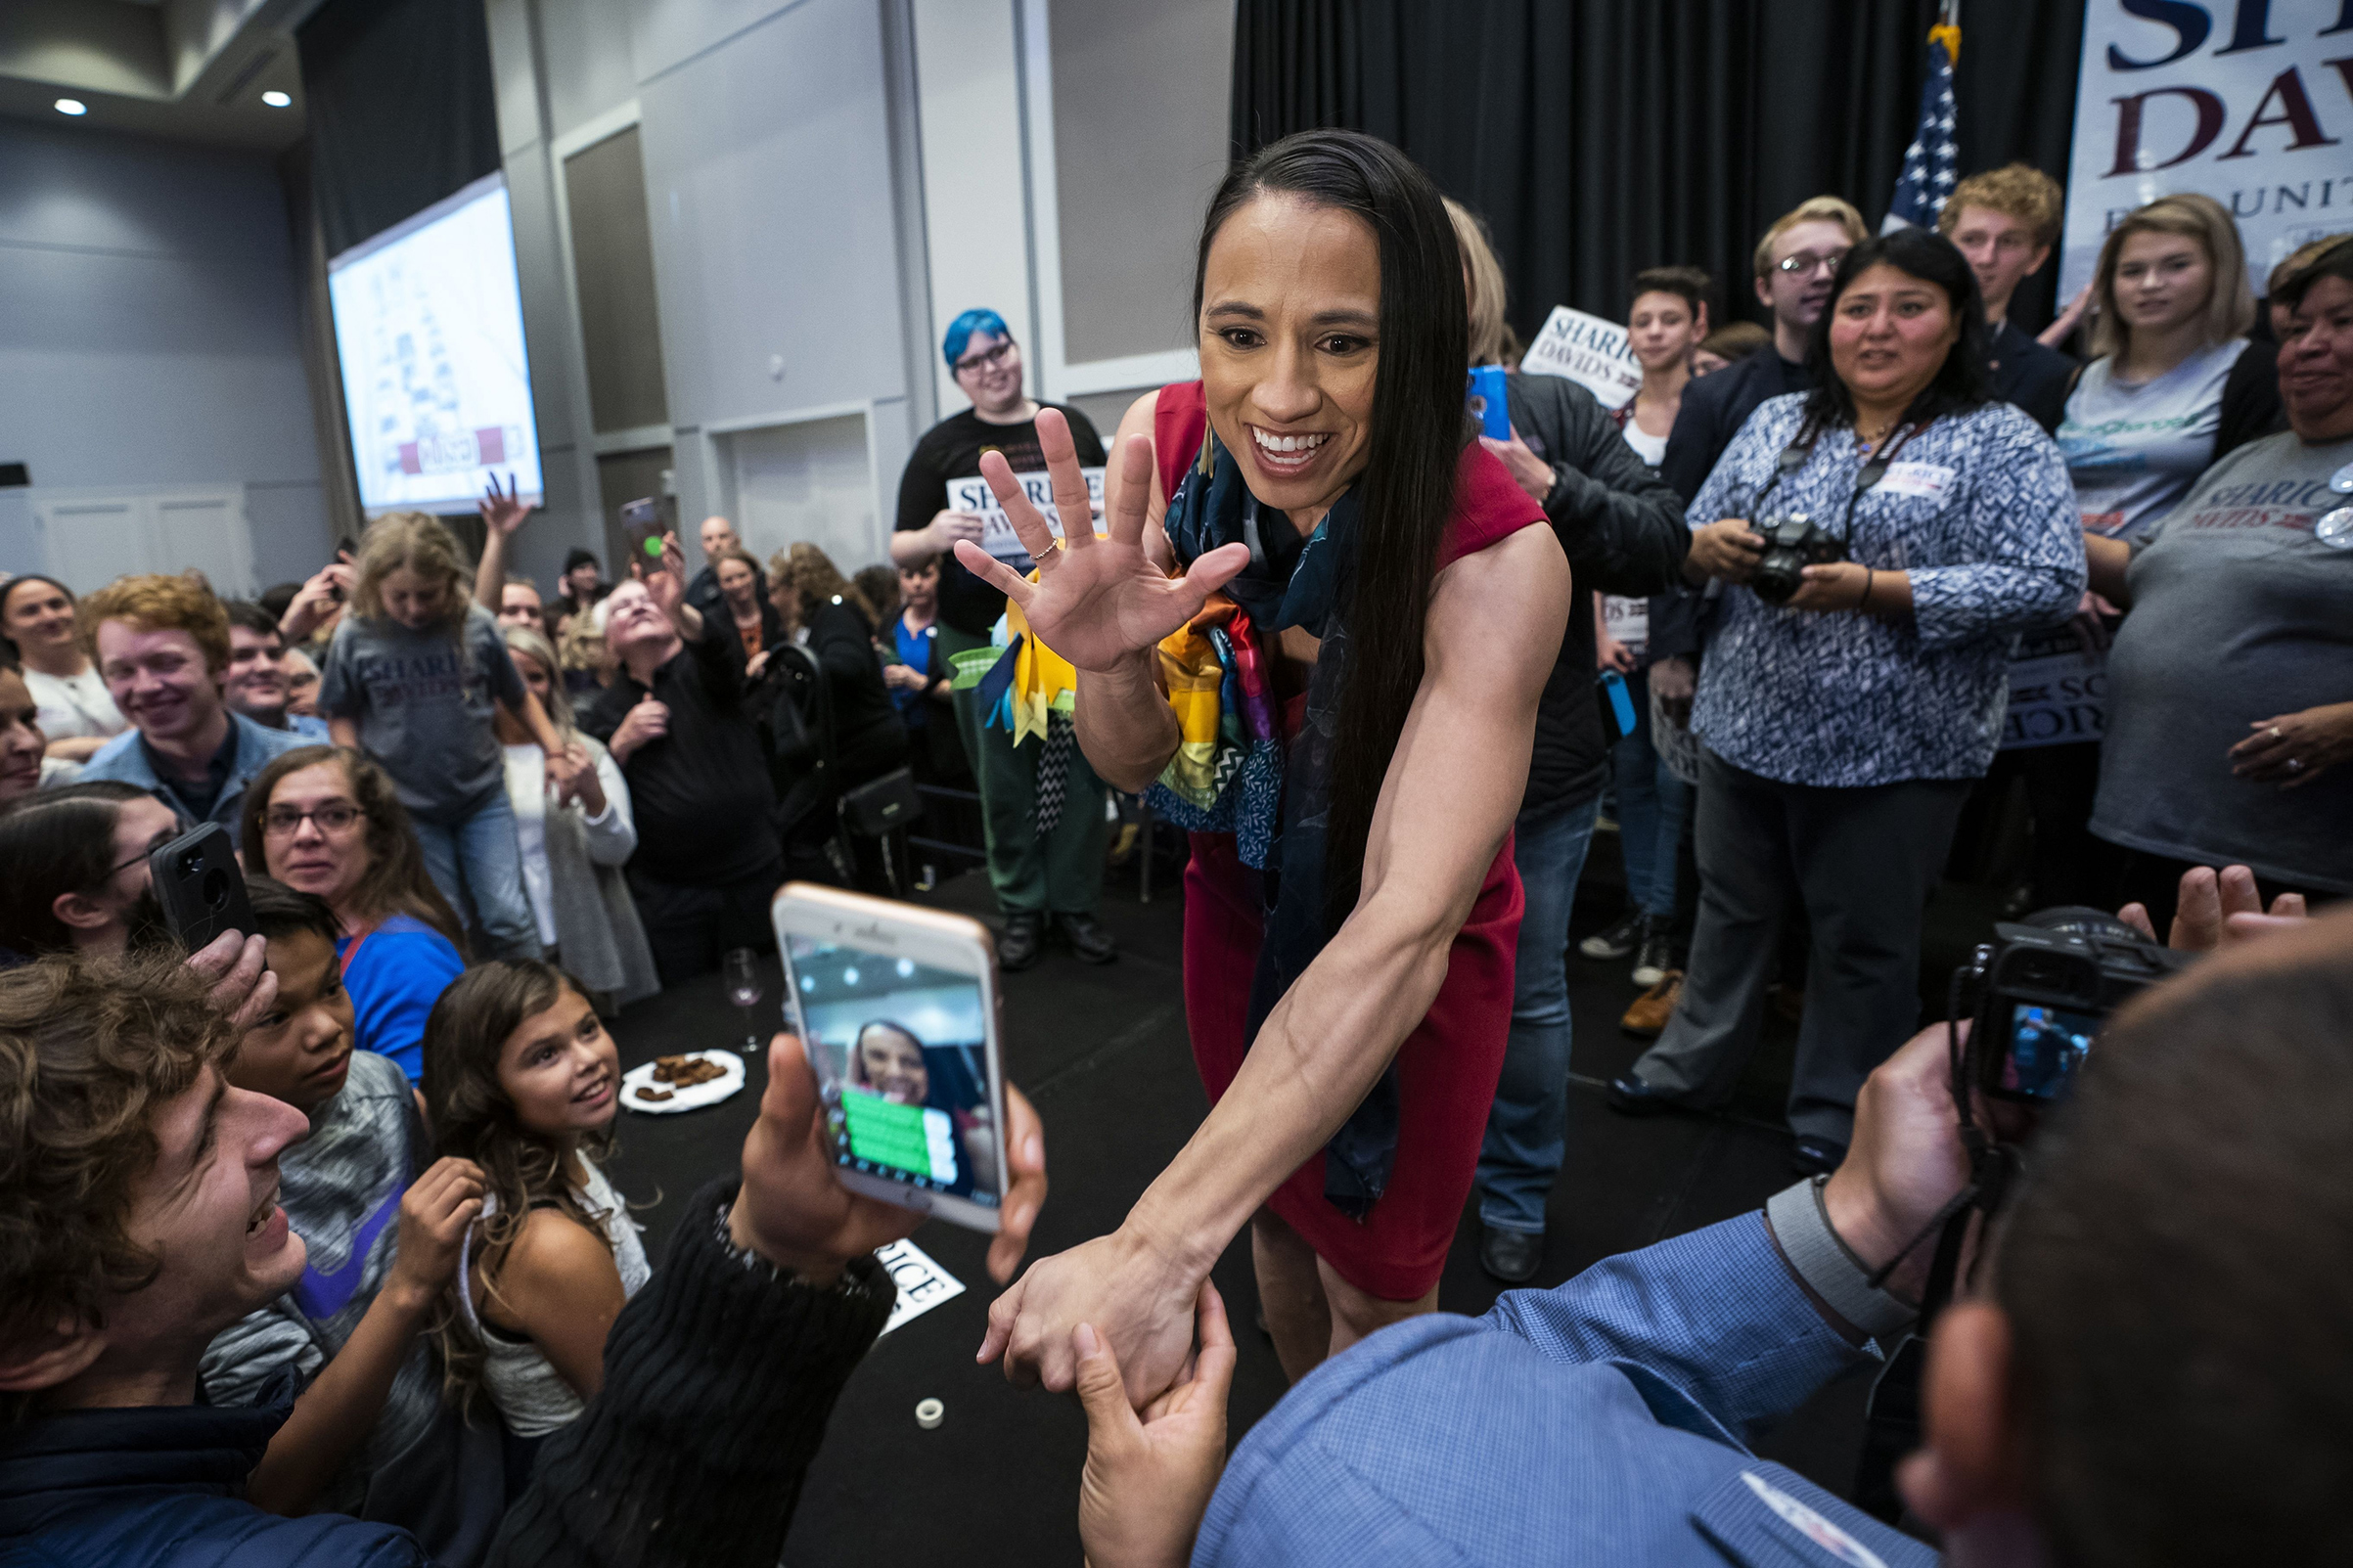 Sharice Davids, 38, will be one of the first Native American women in Congress